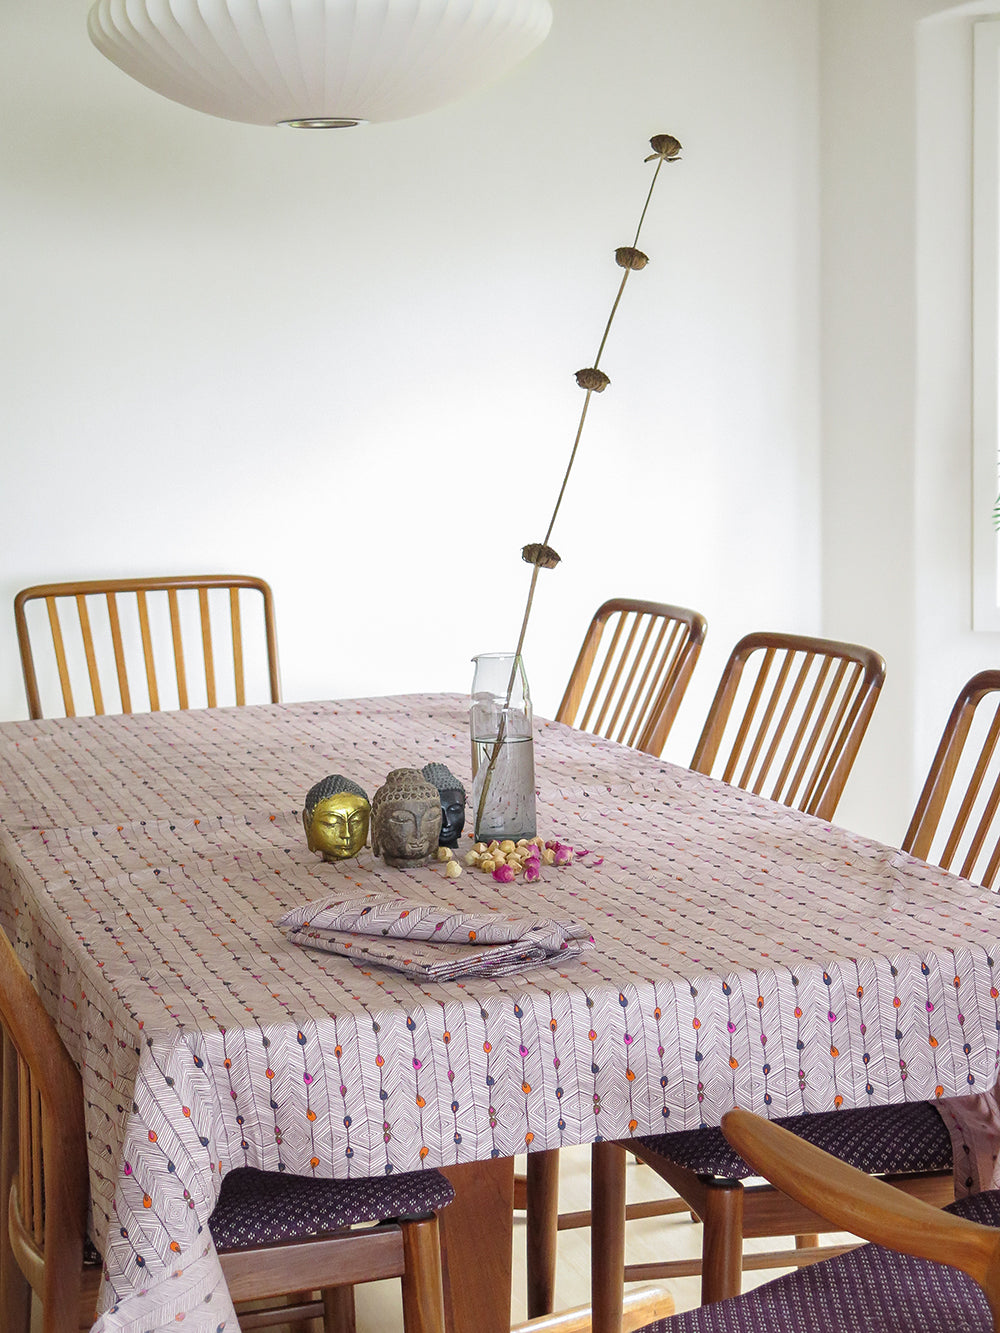 tablecloth in peacock stripe